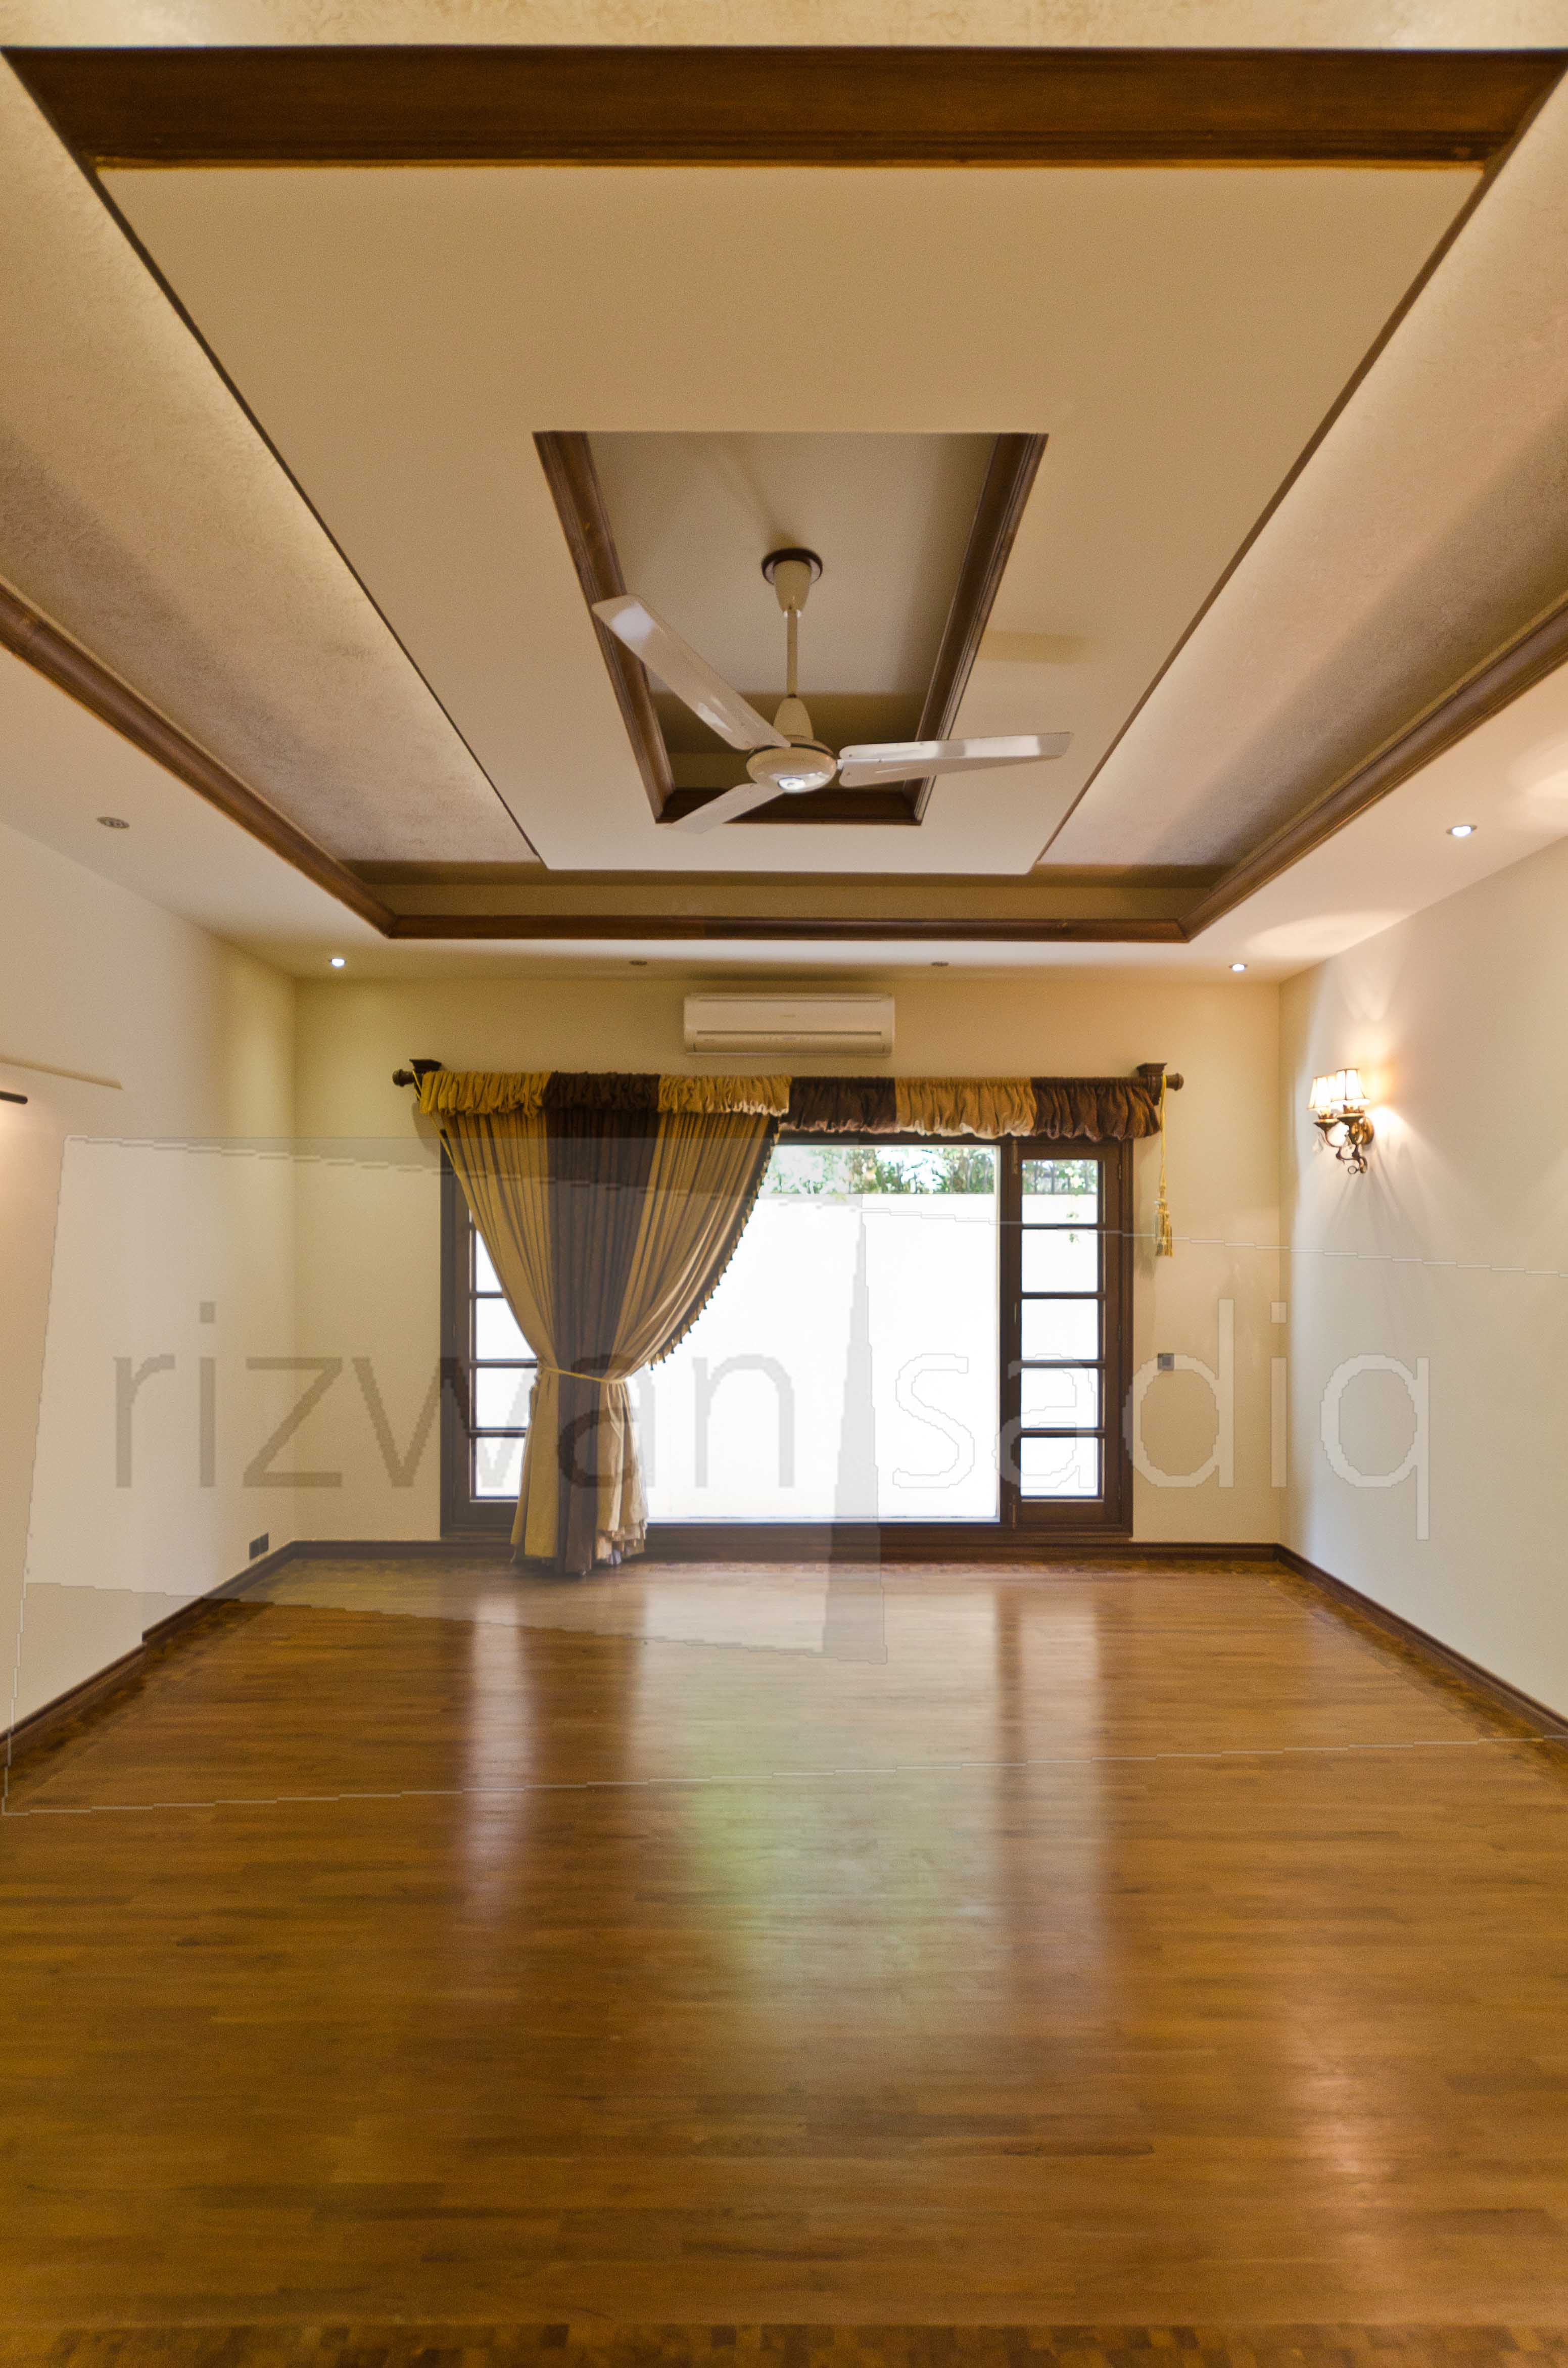 Ceiling Design And Large Windows Extend Our Visual Senses Bringing Forth A Modern Adaptability Of The Theme